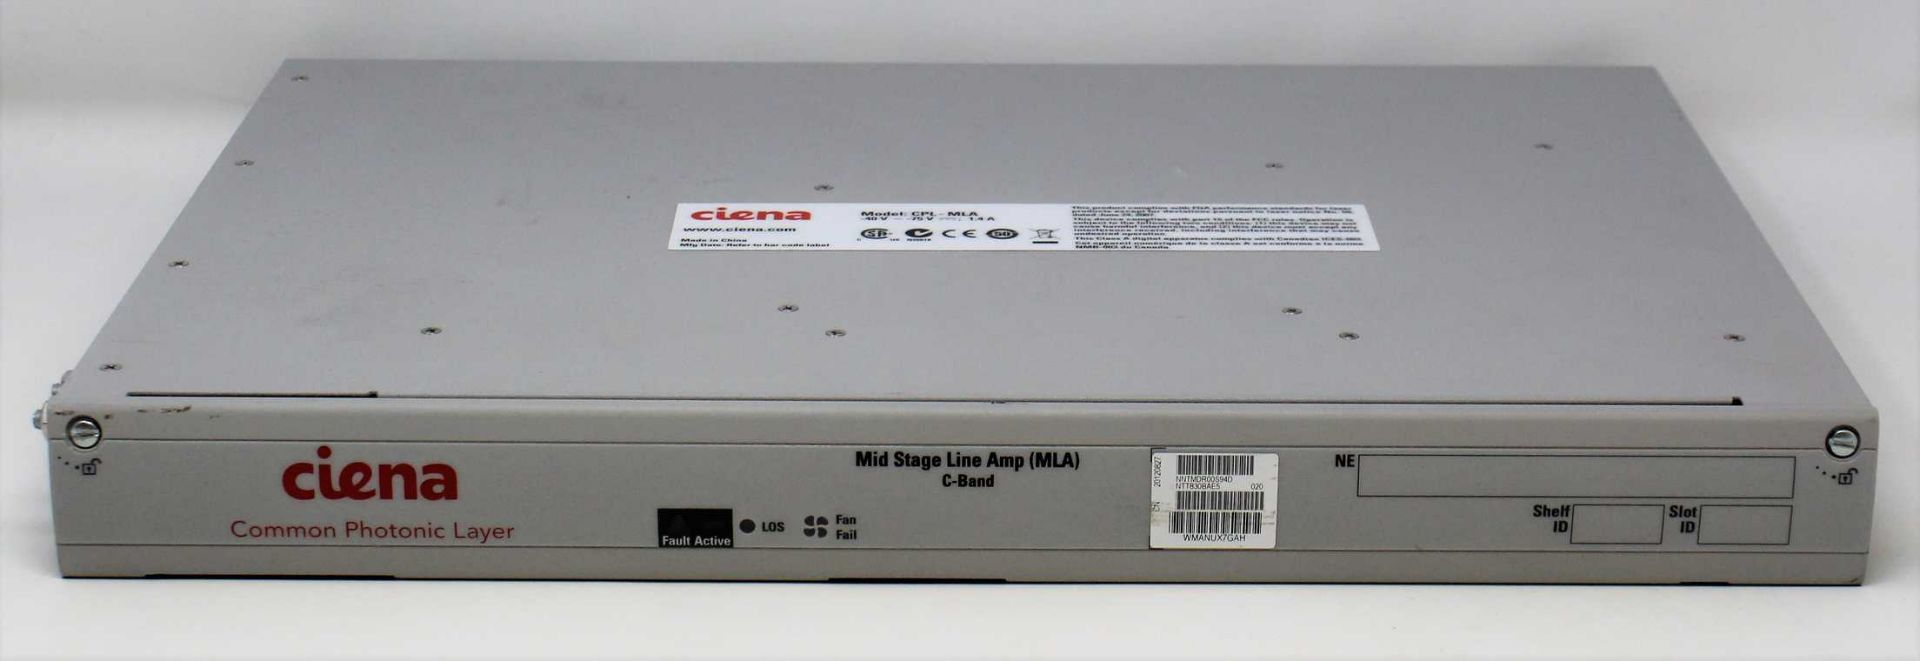 A pre-owned Ciena NTT830BAE5 Common Photonic Layer Mid Stage Line Amp C-Band (NNTMDR00S94D) (